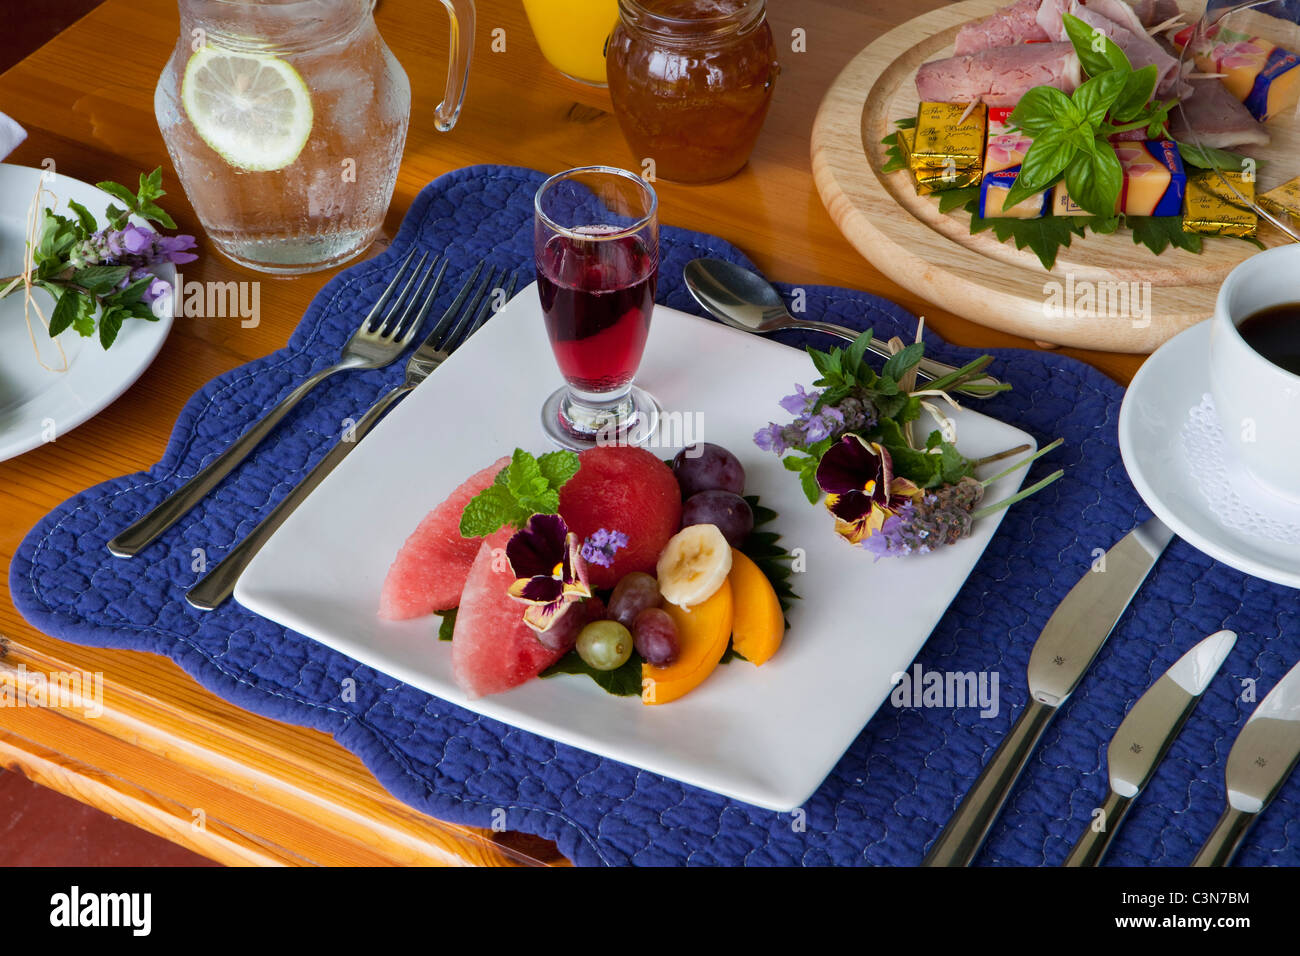 L'Afrique du Sud, Western Cape, Calitzdorp, Red Mountain. Le petit-déjeuner. Photo Stock